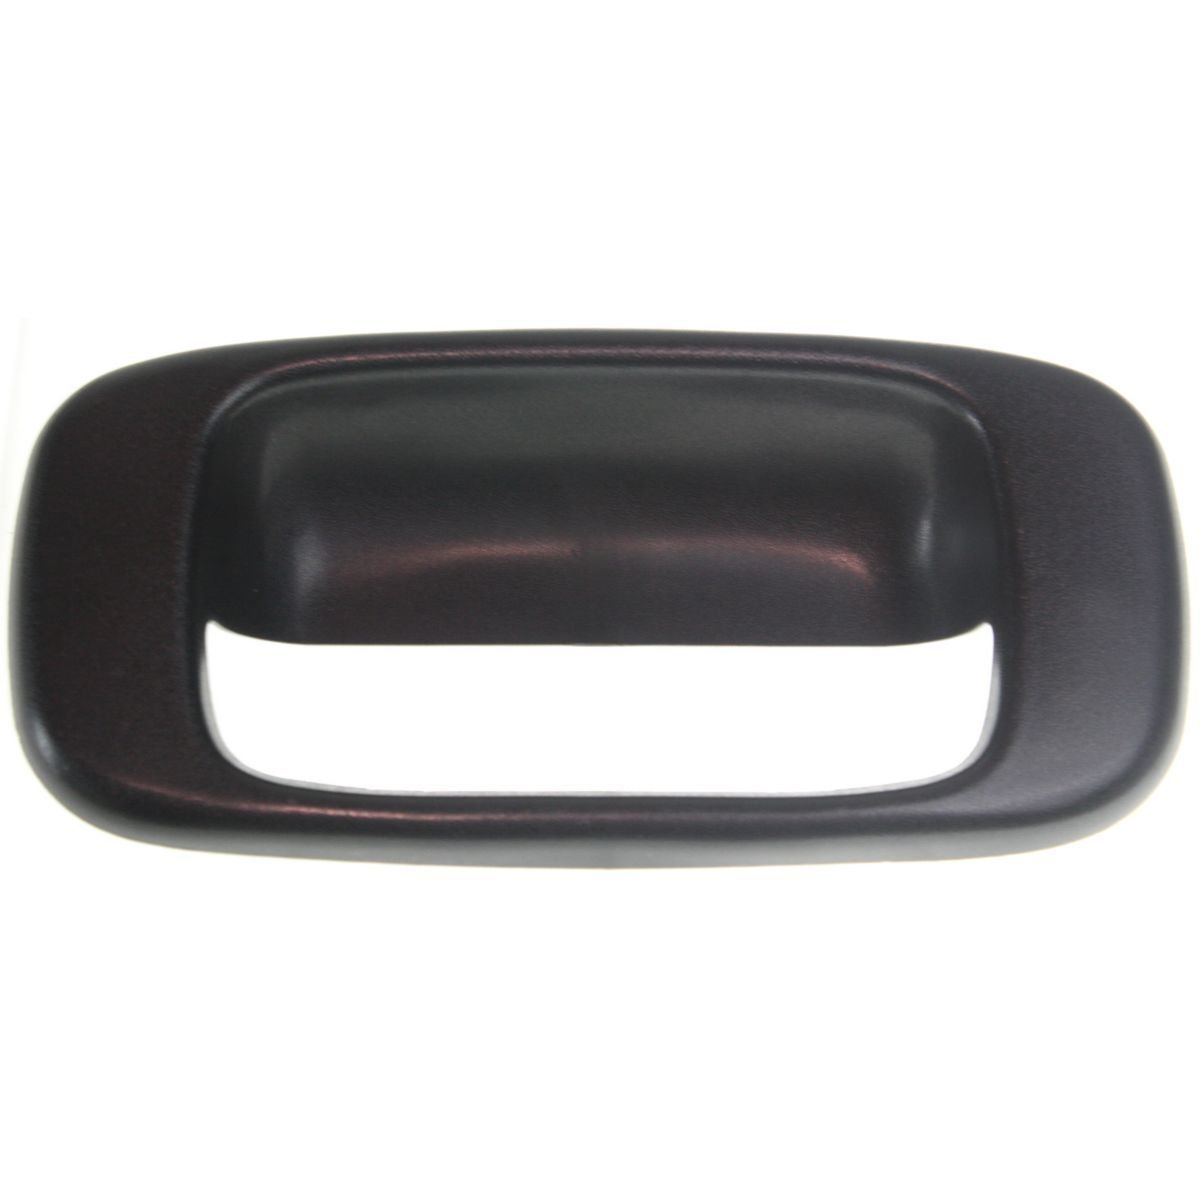 Diften 102-A5417-X01 - New Lots of 3 Tailgate Handle Bezel Outer Black Full Size Truck Chevy GM1916102